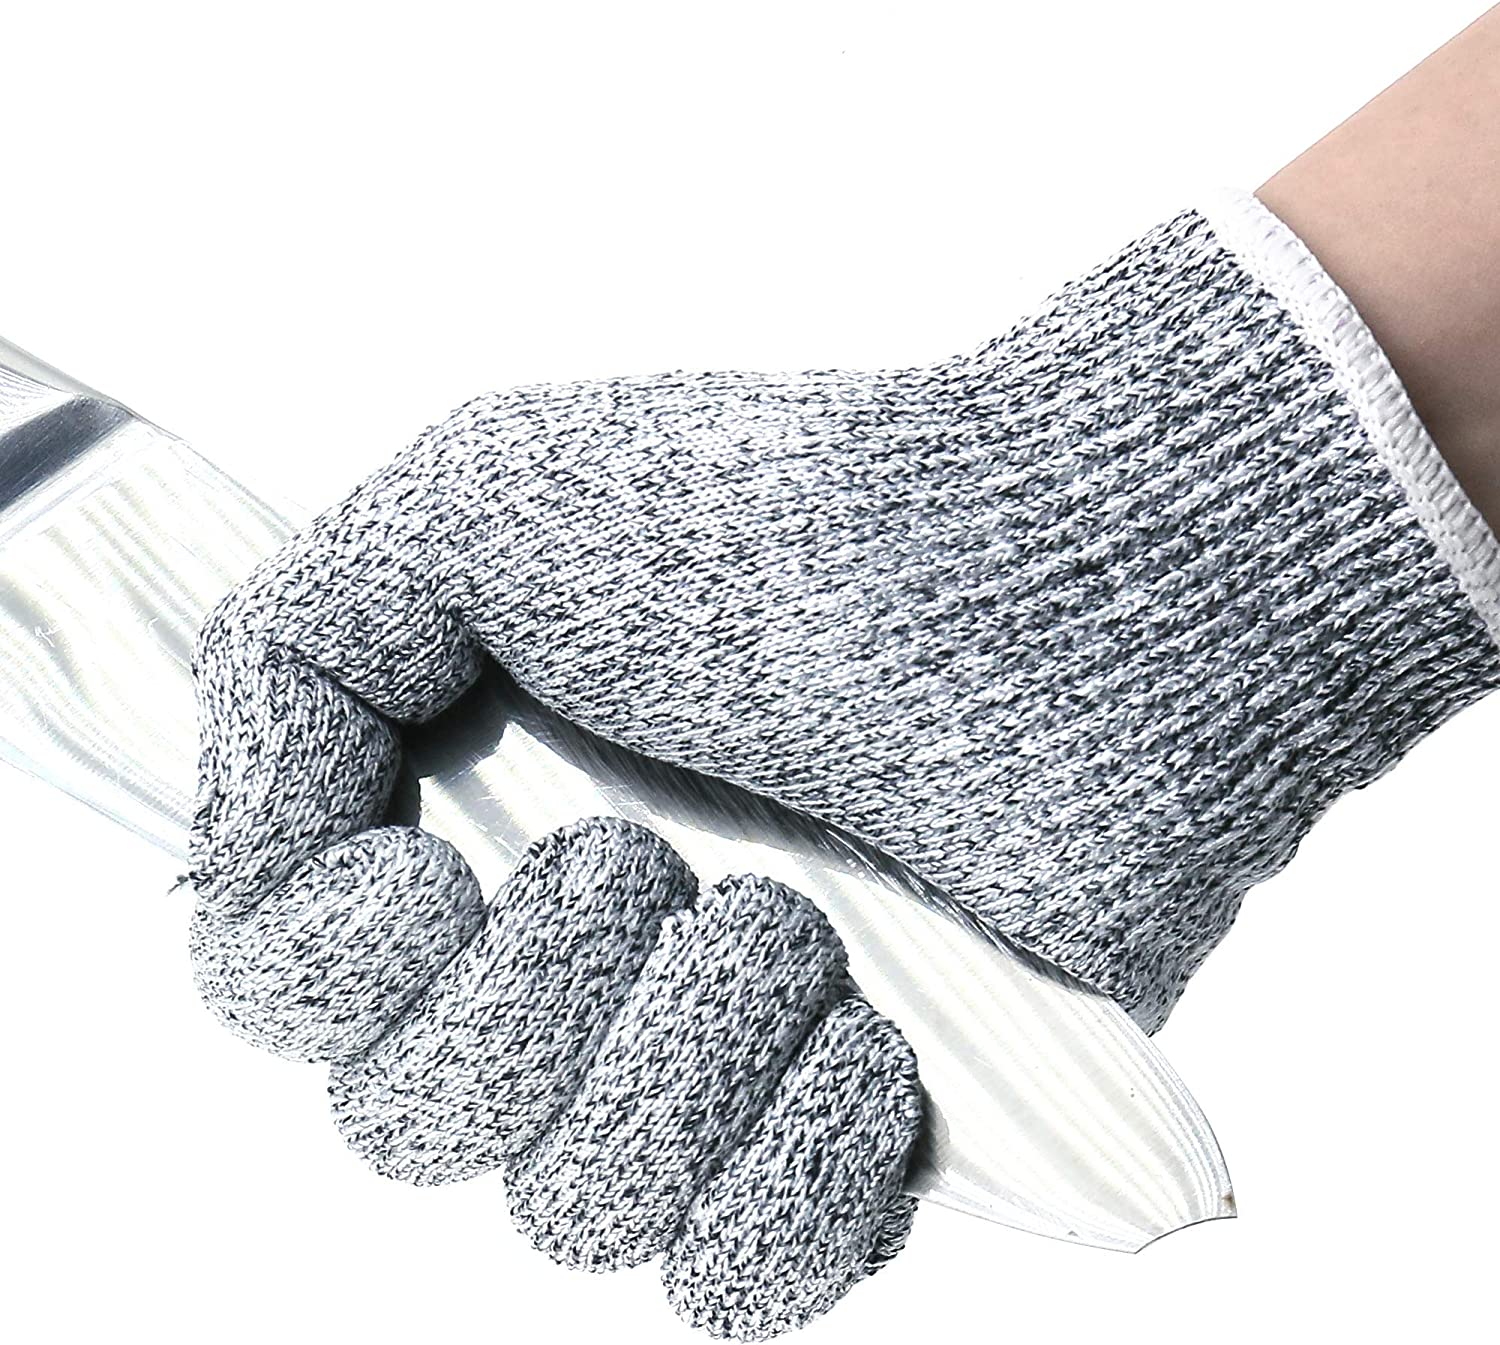 TOREGE Cut Resistant Gloves,Cut Proof Gloves Of Food Grade,High Performance Anti-Cut Material, Great For Cooking,Working,Cutting Etc (Unsex M)